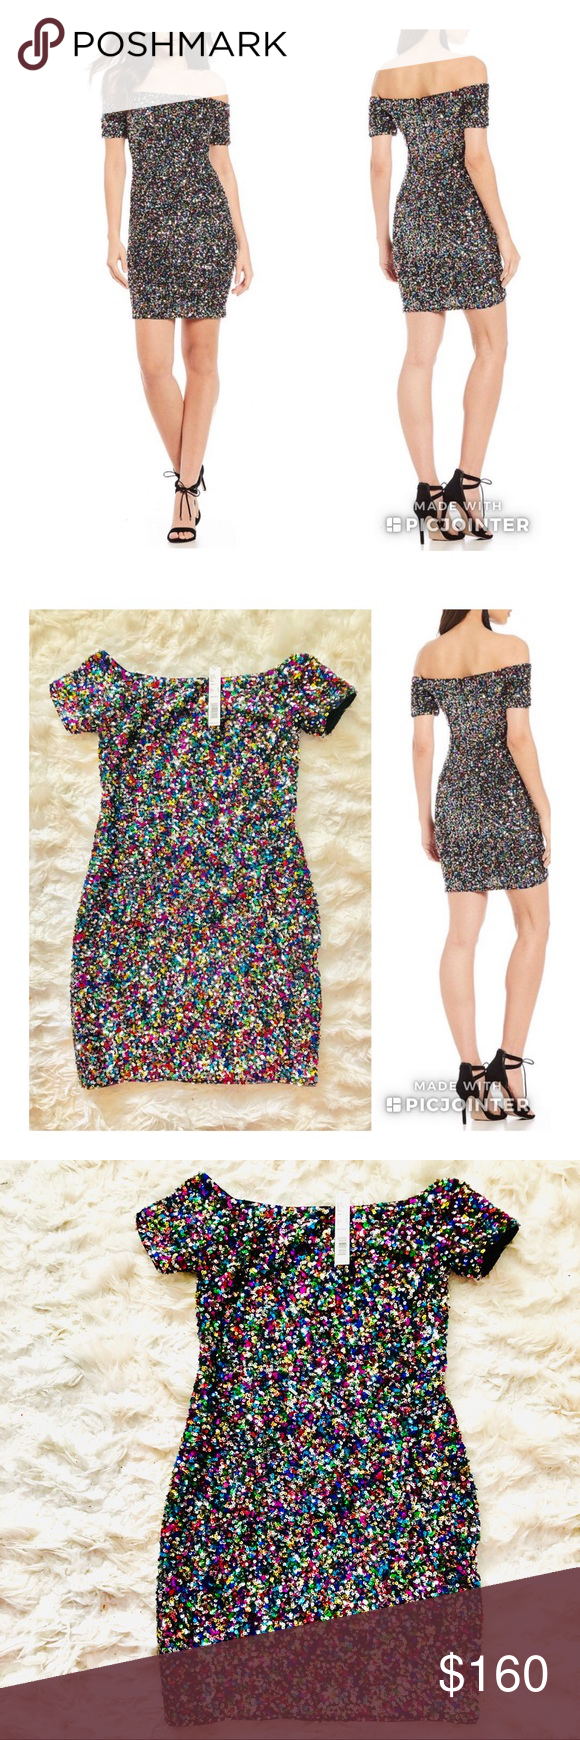 4d39ea64a5d 🔥NEW GIANNI BINI Zoe Confetti Sequin Dress The party doesn t start until  you